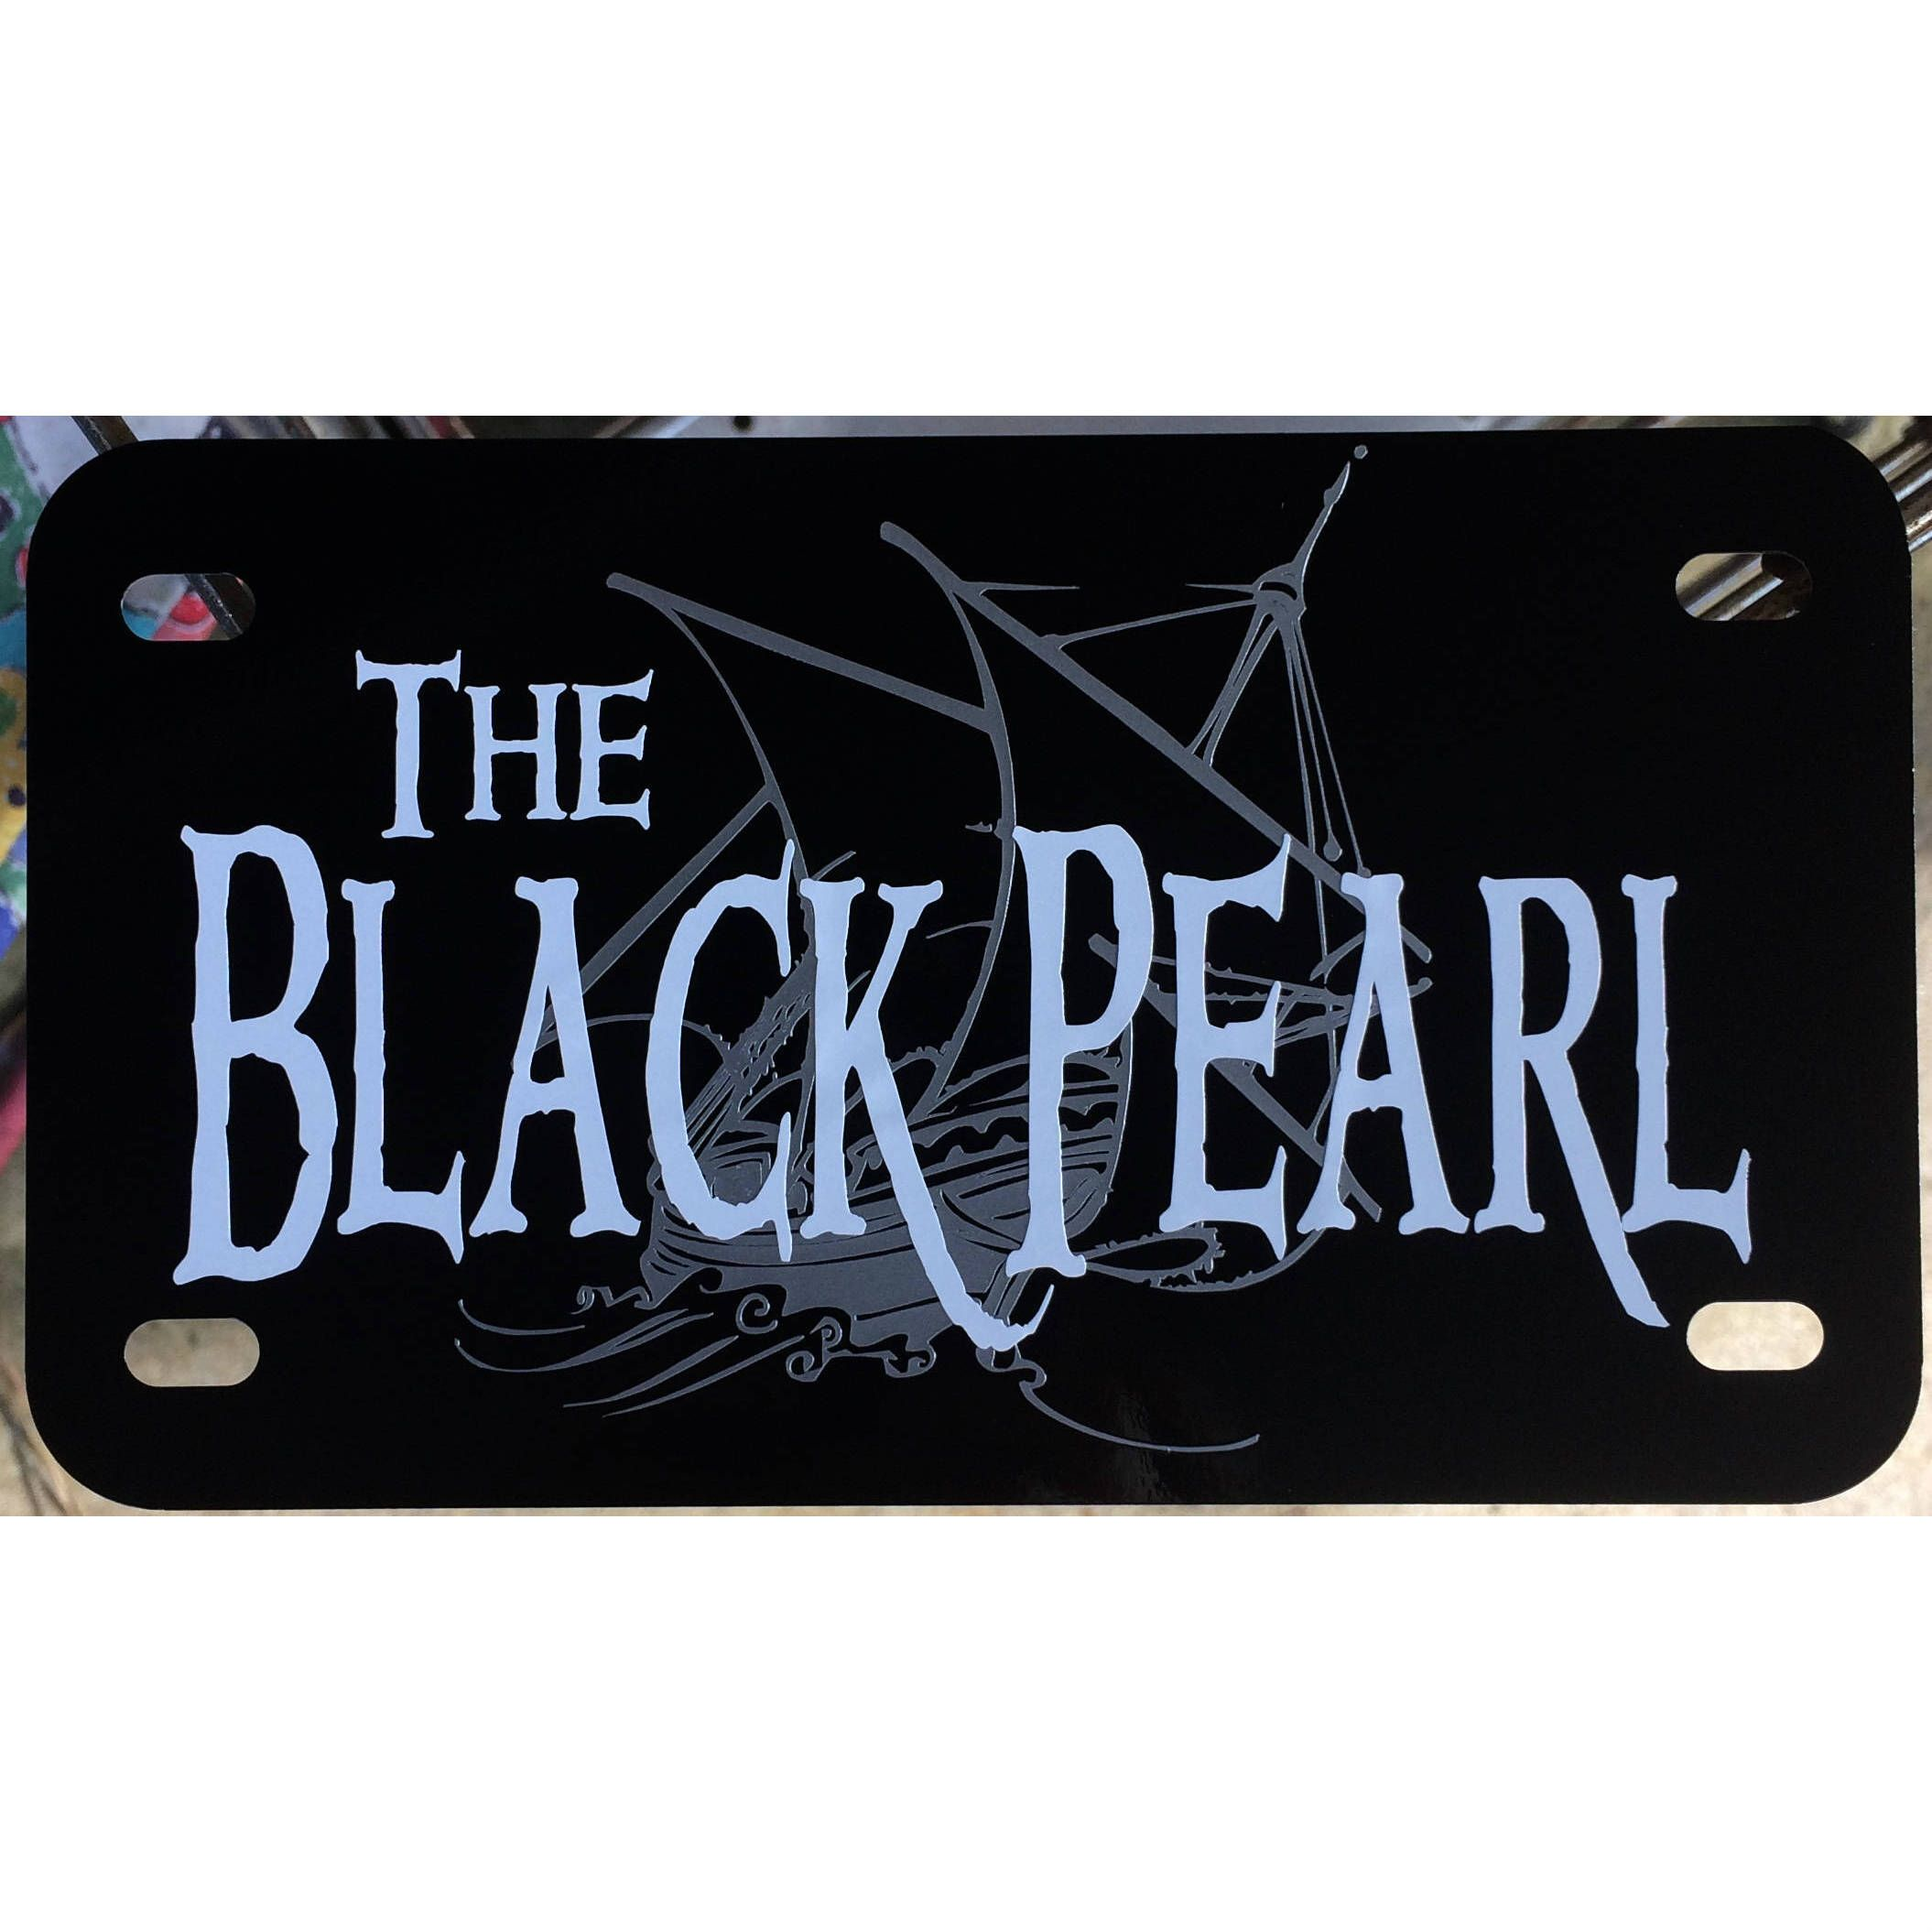 Motorcycle Pirates Of The Caribbean License Plate Black Pearl